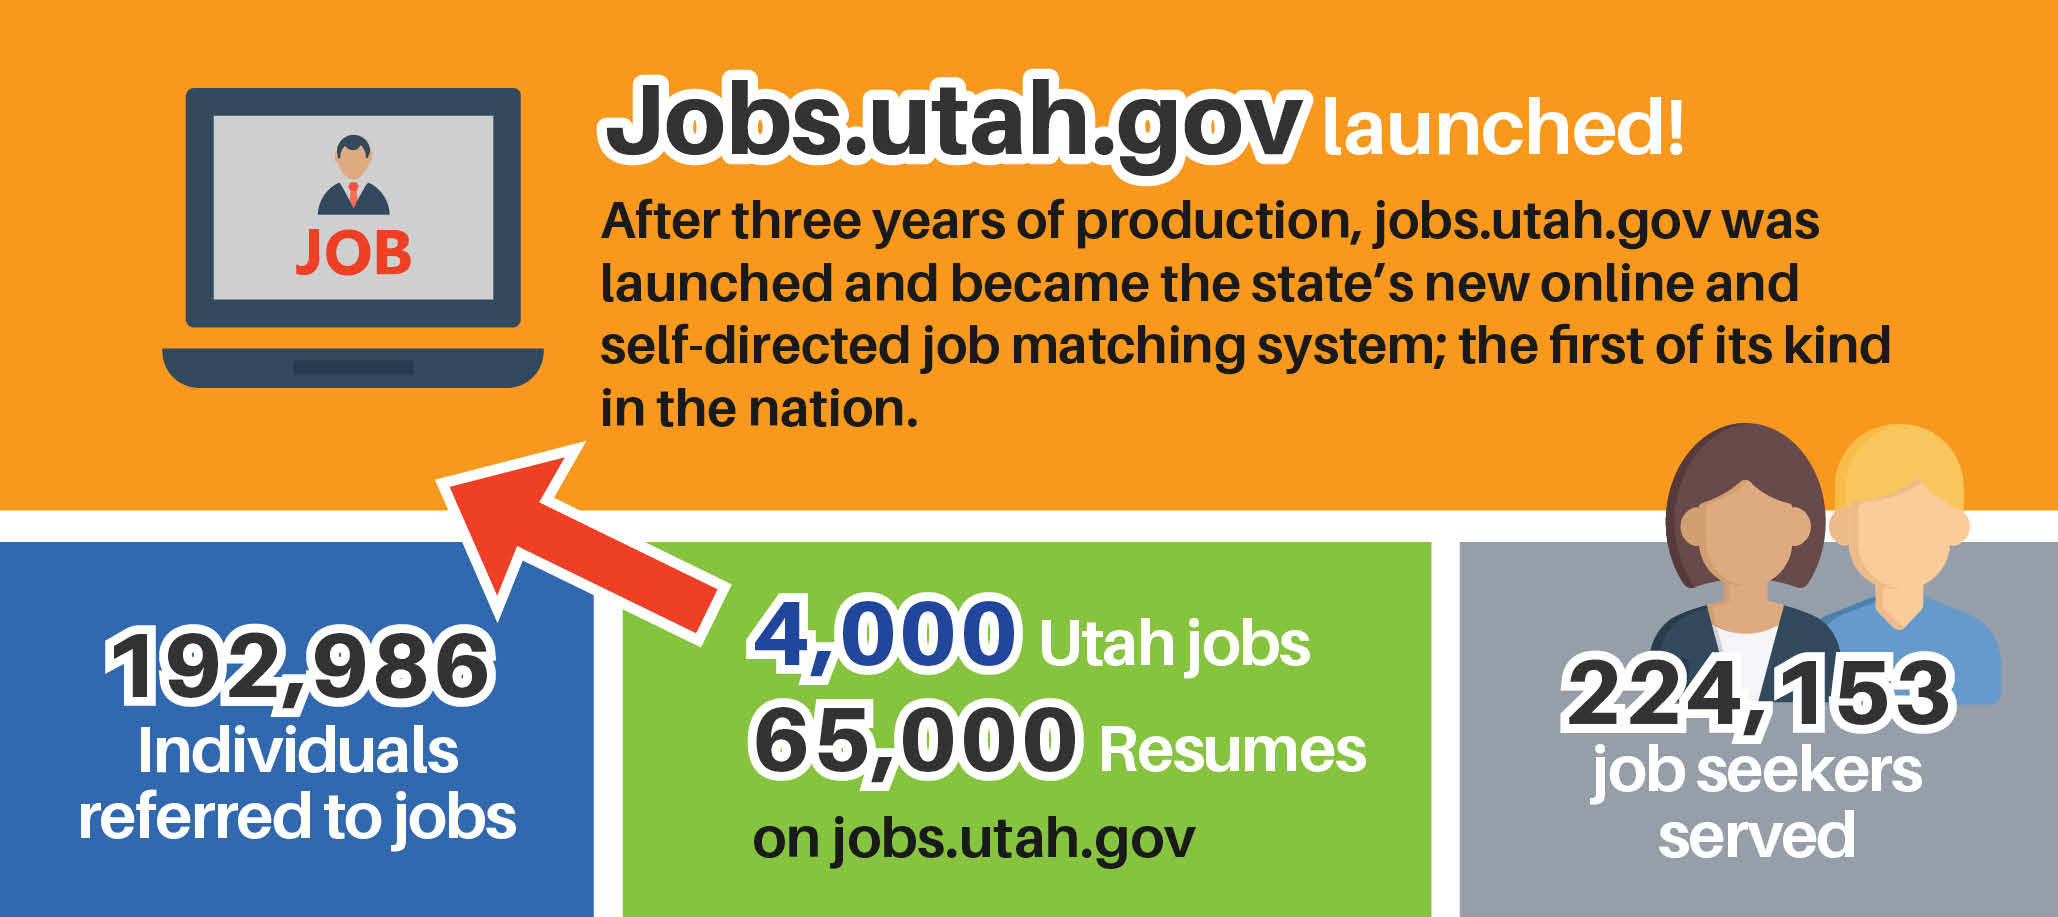 After three years of production, jobs.utah.gov was launched and became the state's new online and self-directed job matching system; the first of its kind in the nation. 4,000 Utah jobs and 65,000 resumes on jobs.utah.gov. 192,986 individuals referred to jobs. 253,697 job seekers served.